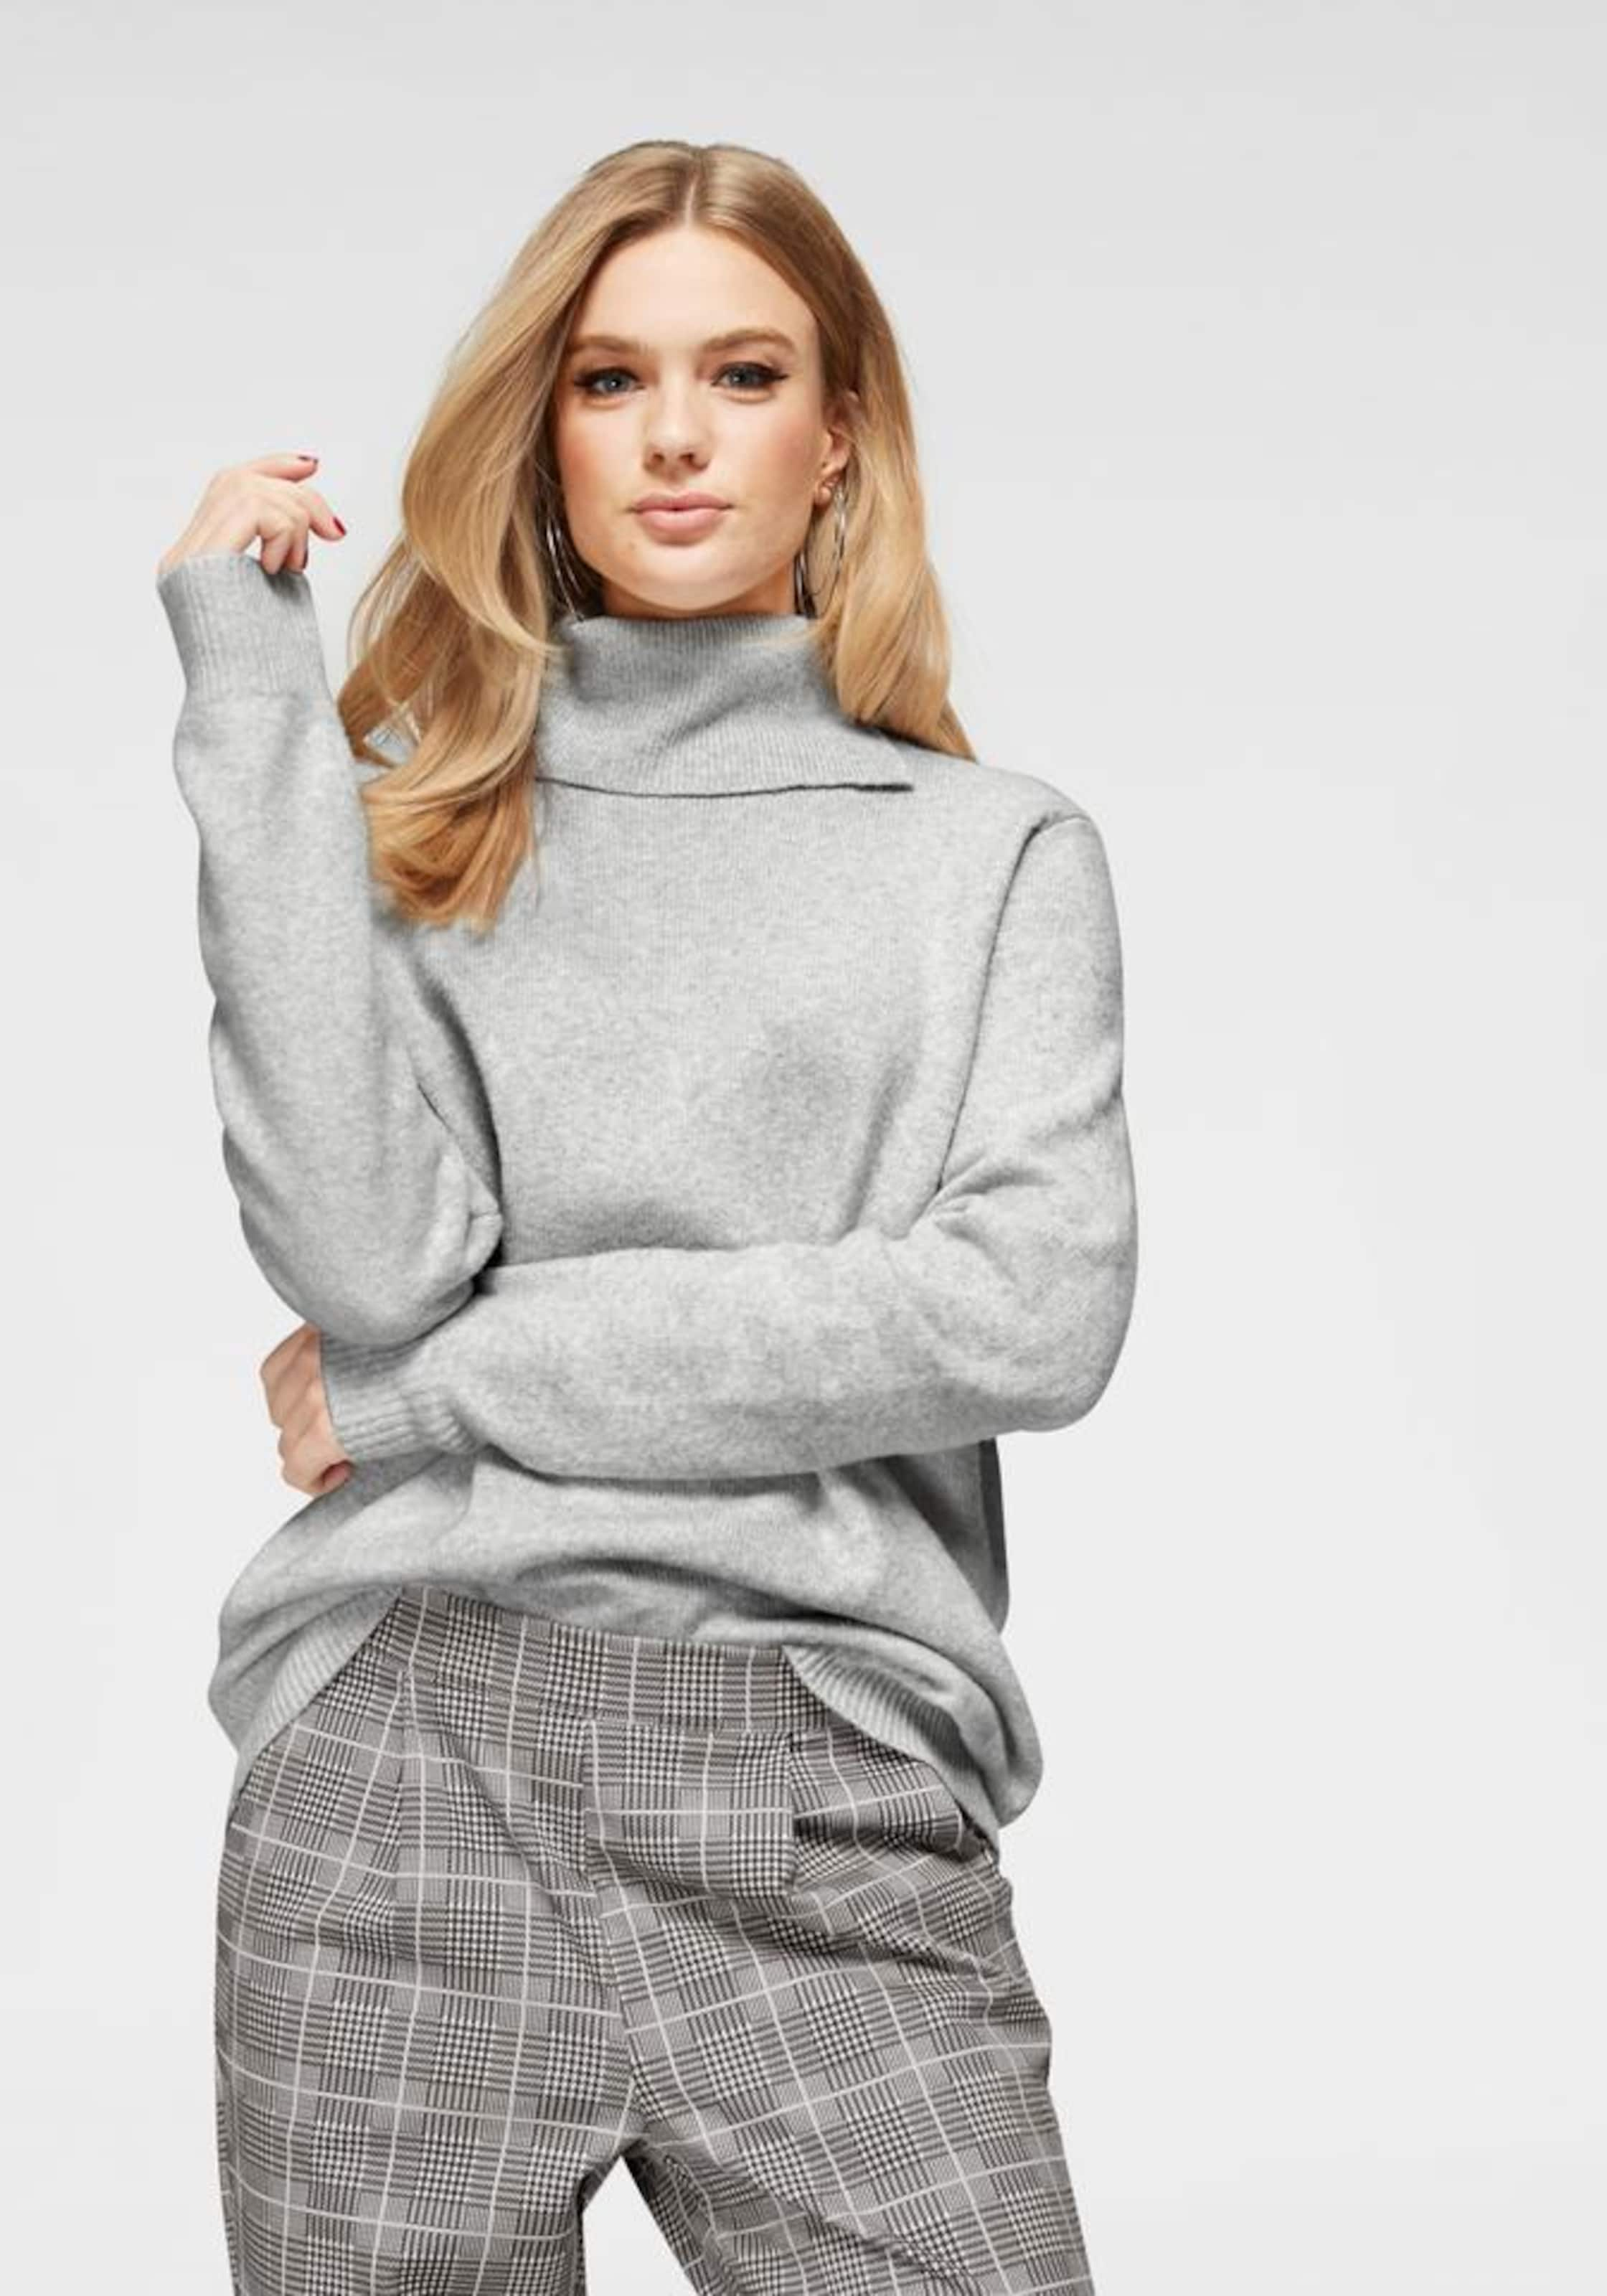 Jacqueline Yong De Pullover 'lolly' In Hellgrau nw0OPk8X